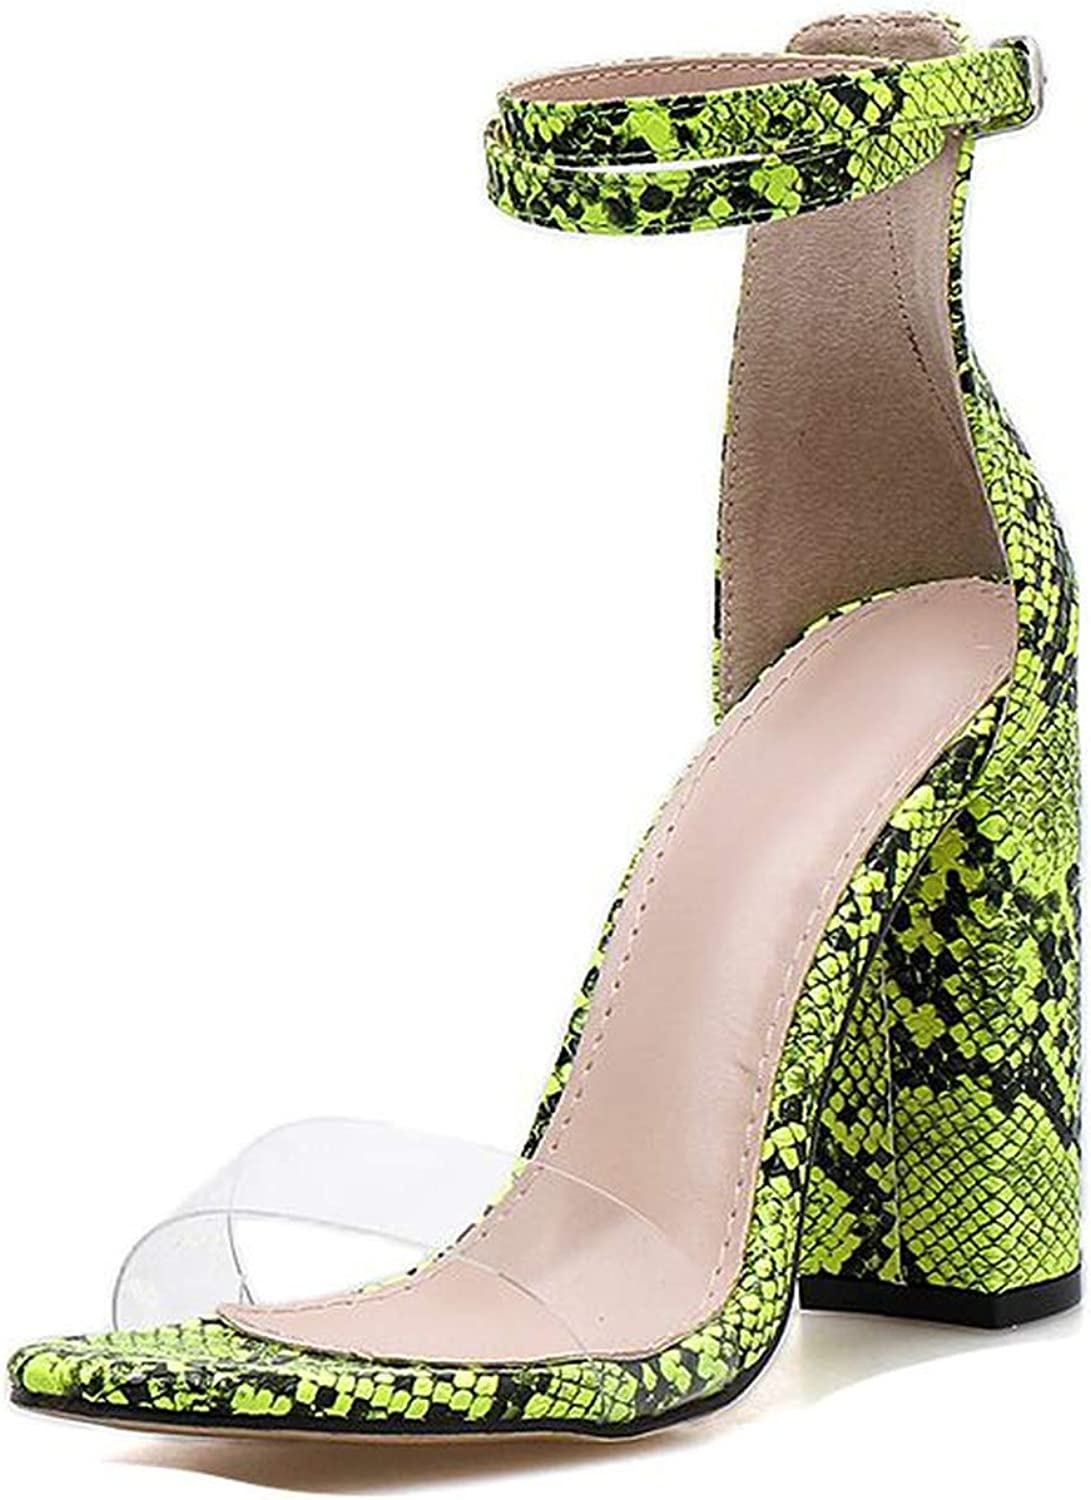 PU Sandals Women shoes Buckle Open-Toe Serpentine Square High Heels,Fluorescent Green,6